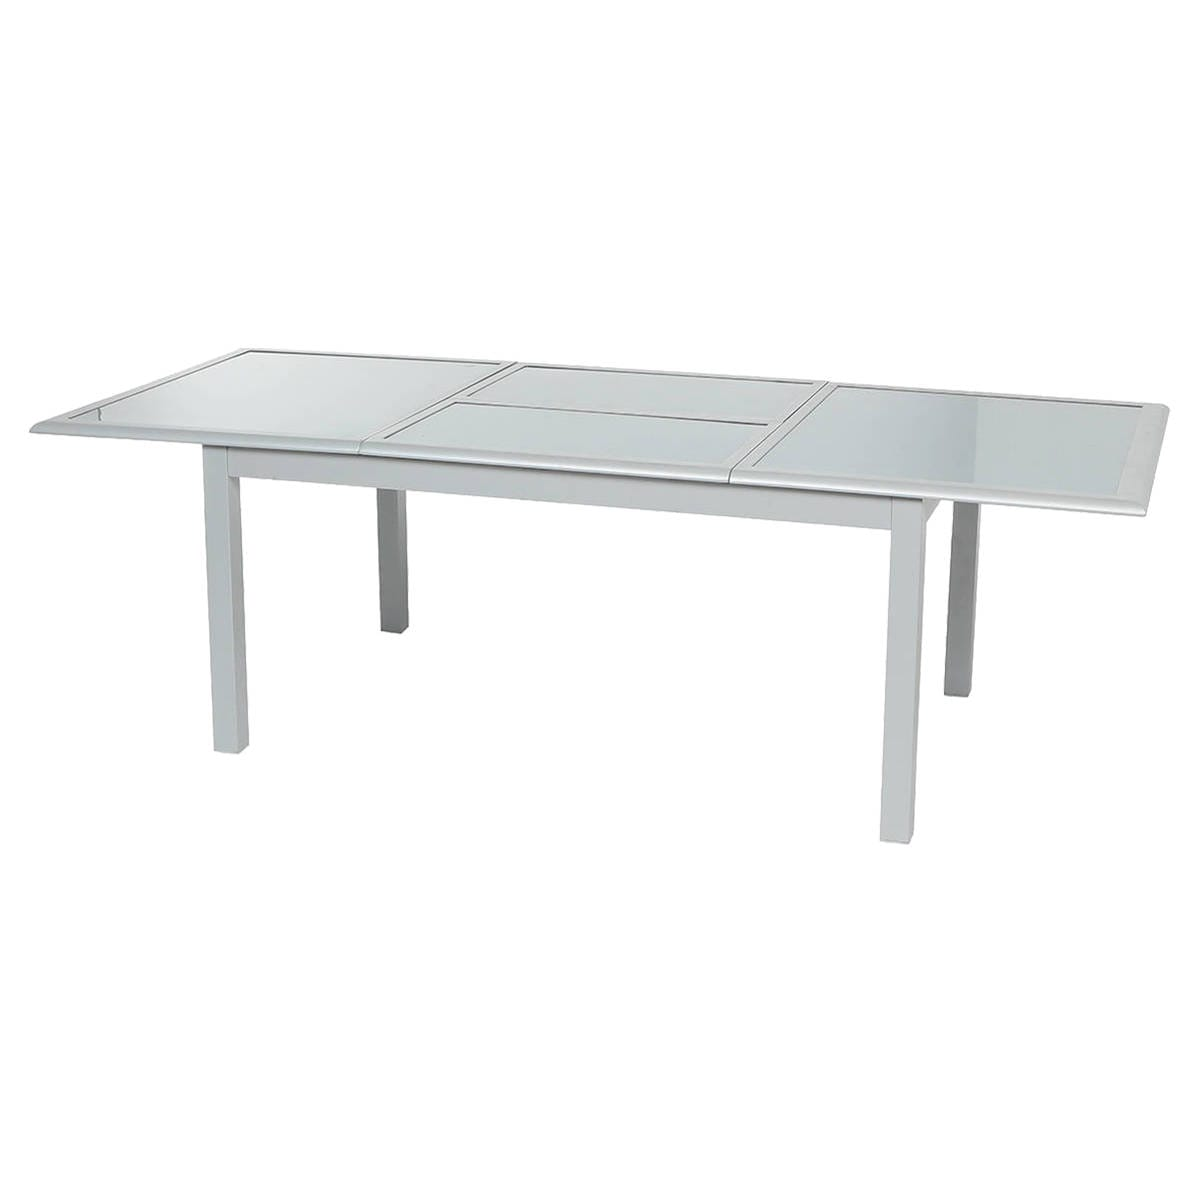 Awesome table de jardin extensible verre contemporary for Table verre noir extensible